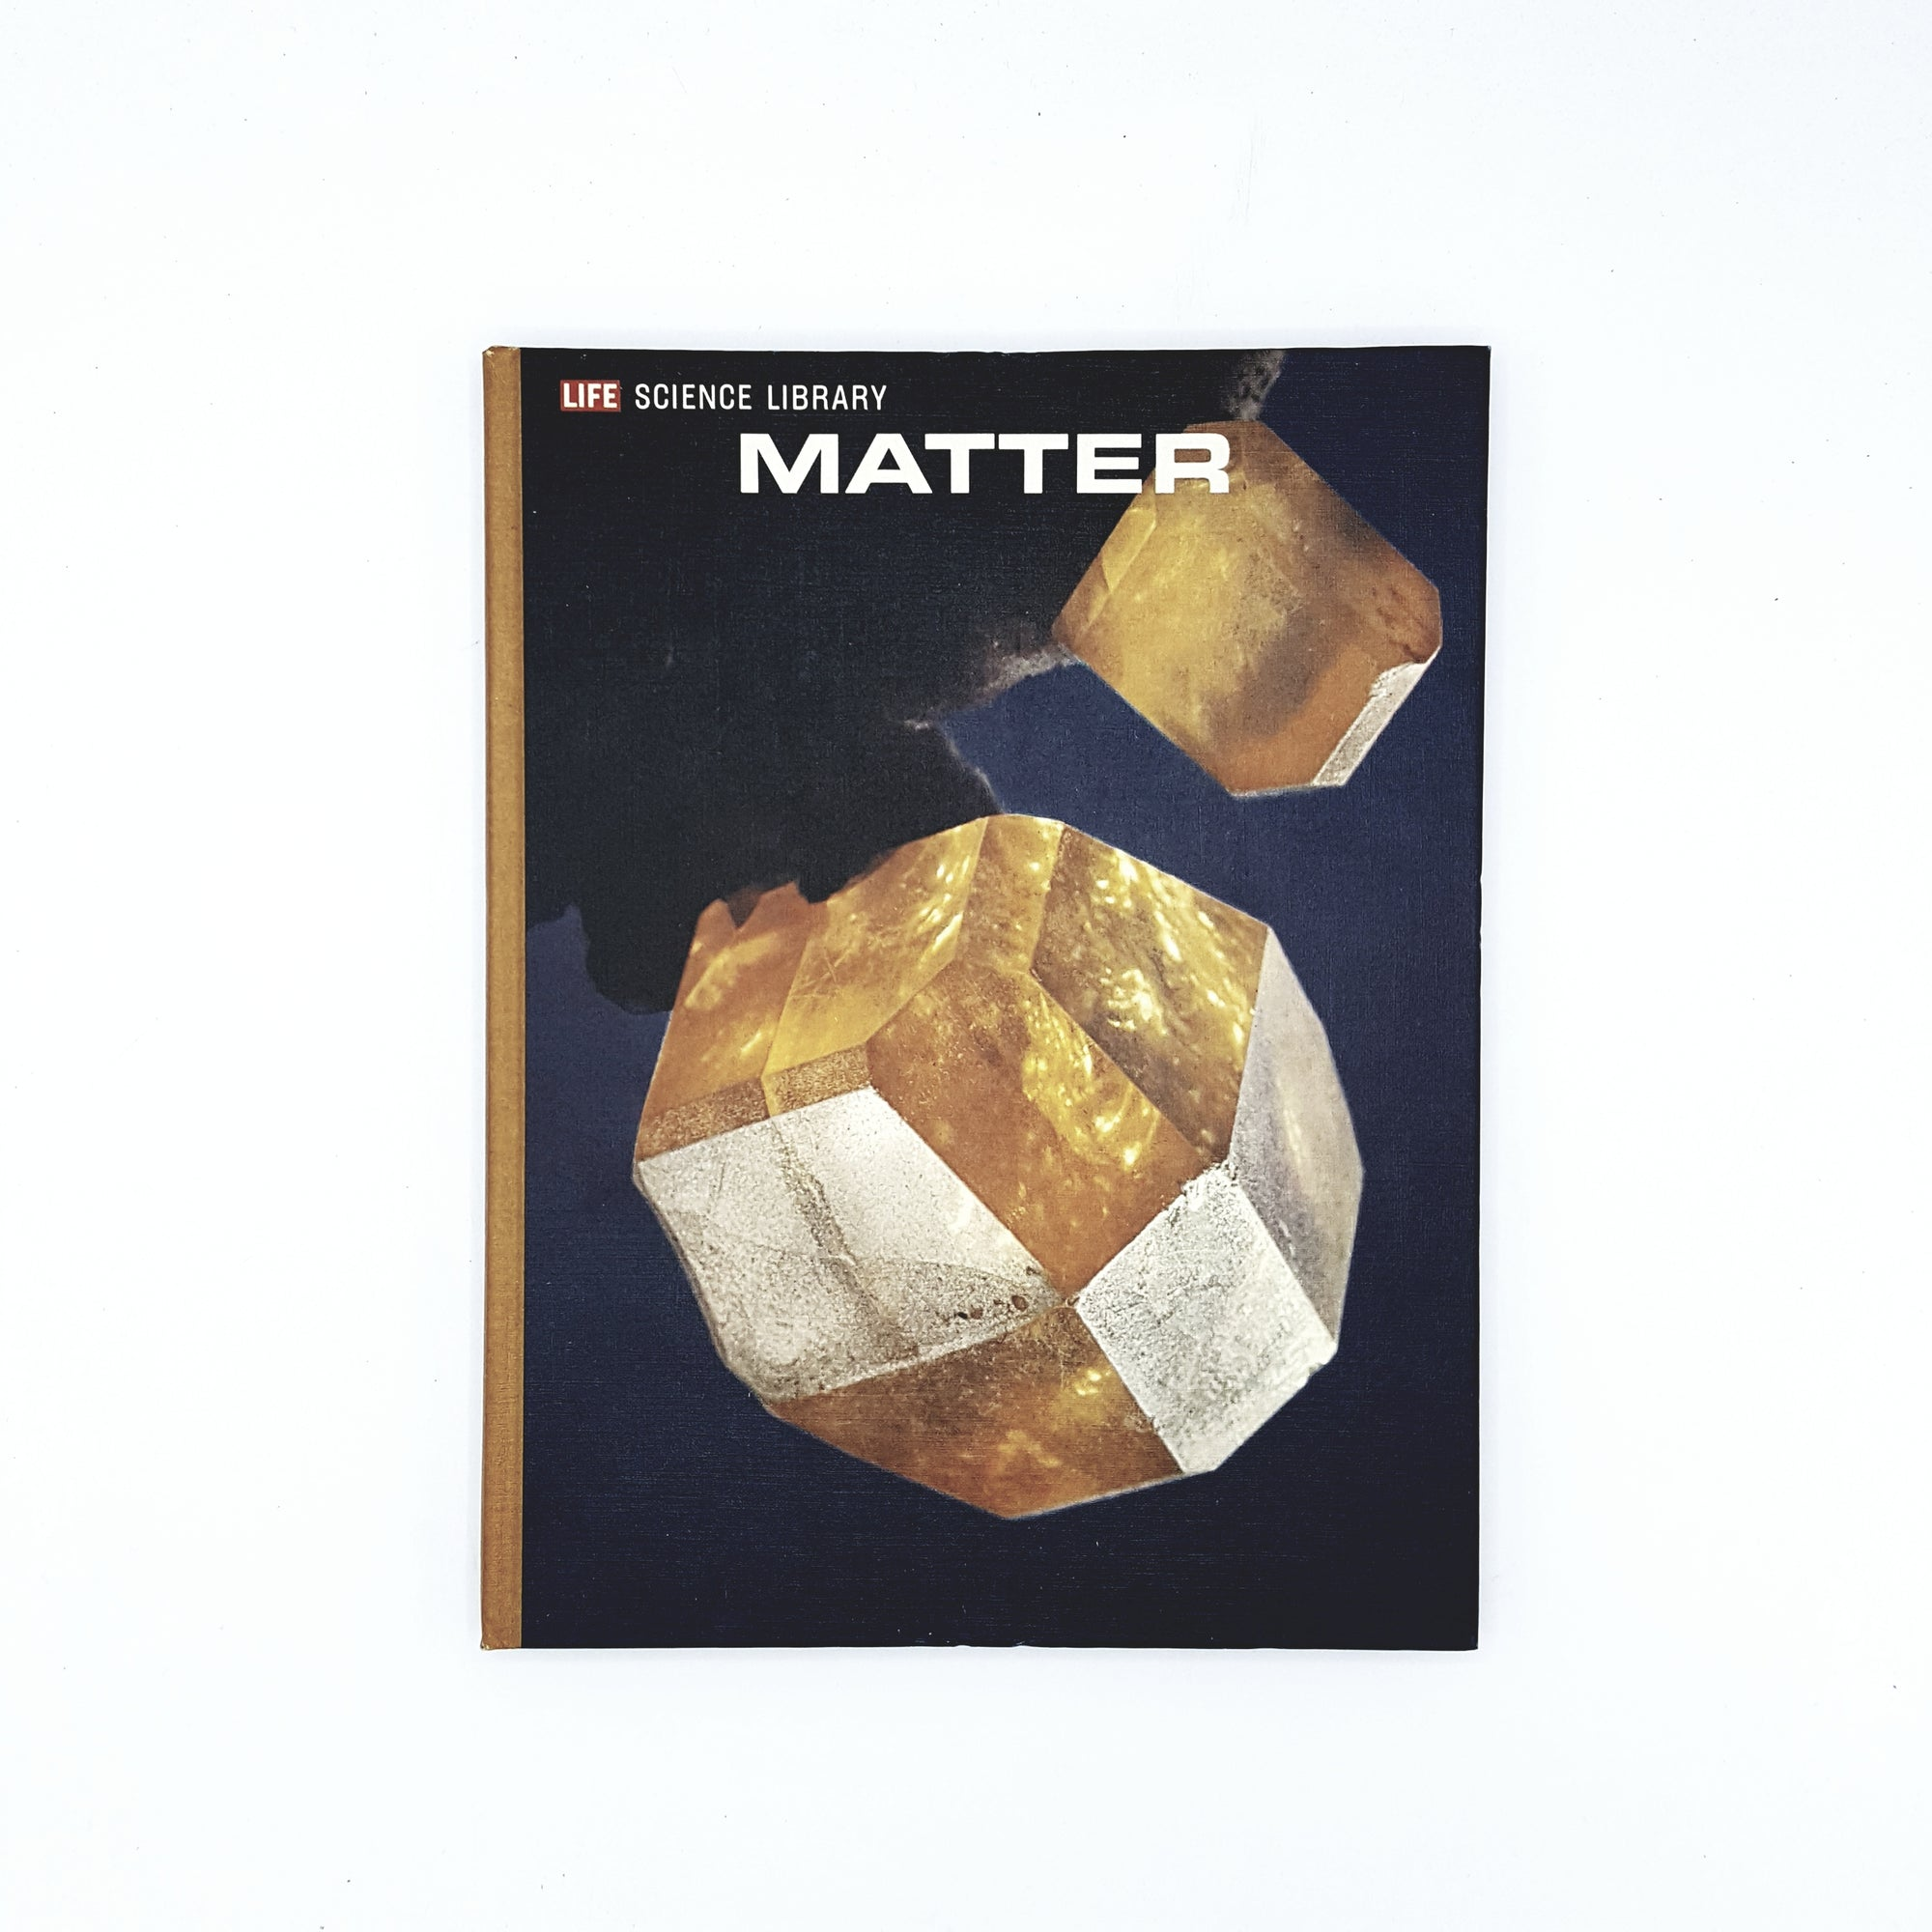 Life Science Library: Matter 1972